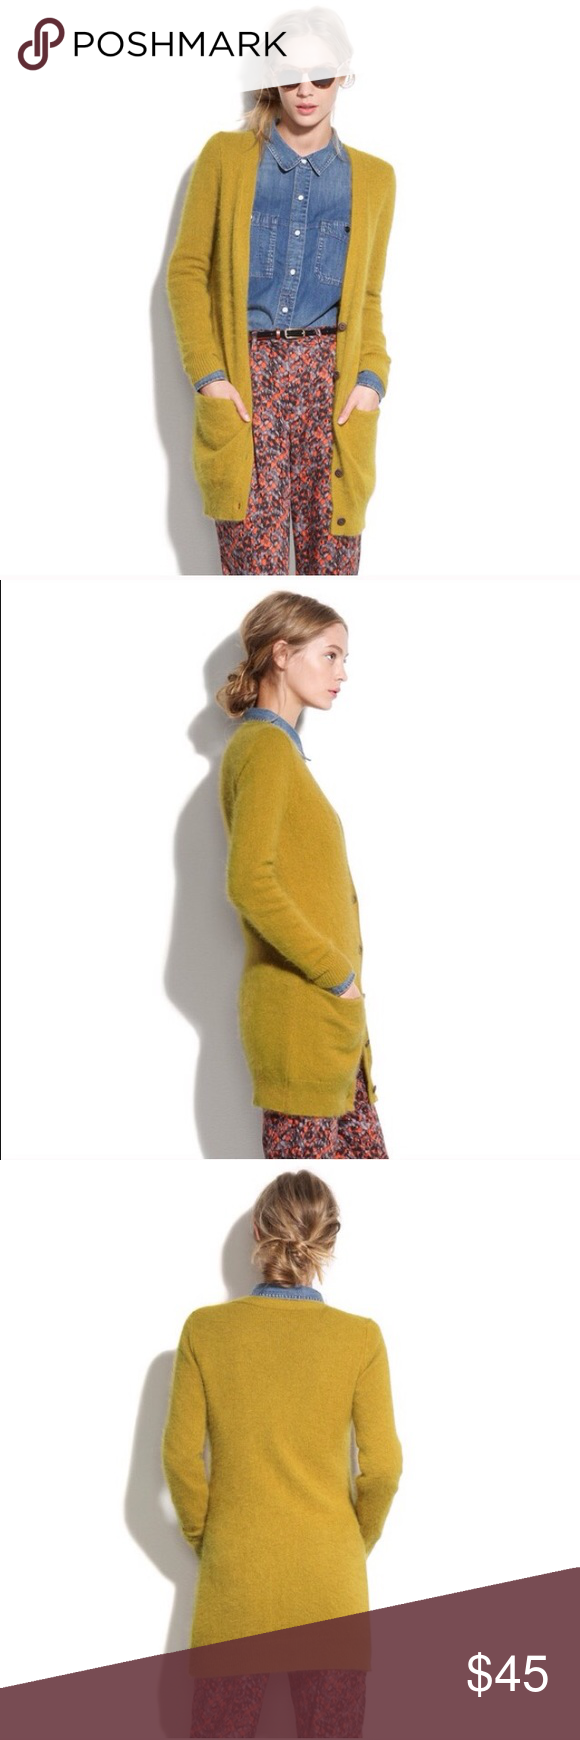 """MADEWELL mustard angora sweater MADEWELL """"silk stone"""" sweater. Sold out online. Super super soft. Reposhing, worn once but not a good color for me. Does look adorable matched with denim & red. Wallace brand by MADEWELL. Madewell Sweaters Cardigans"""